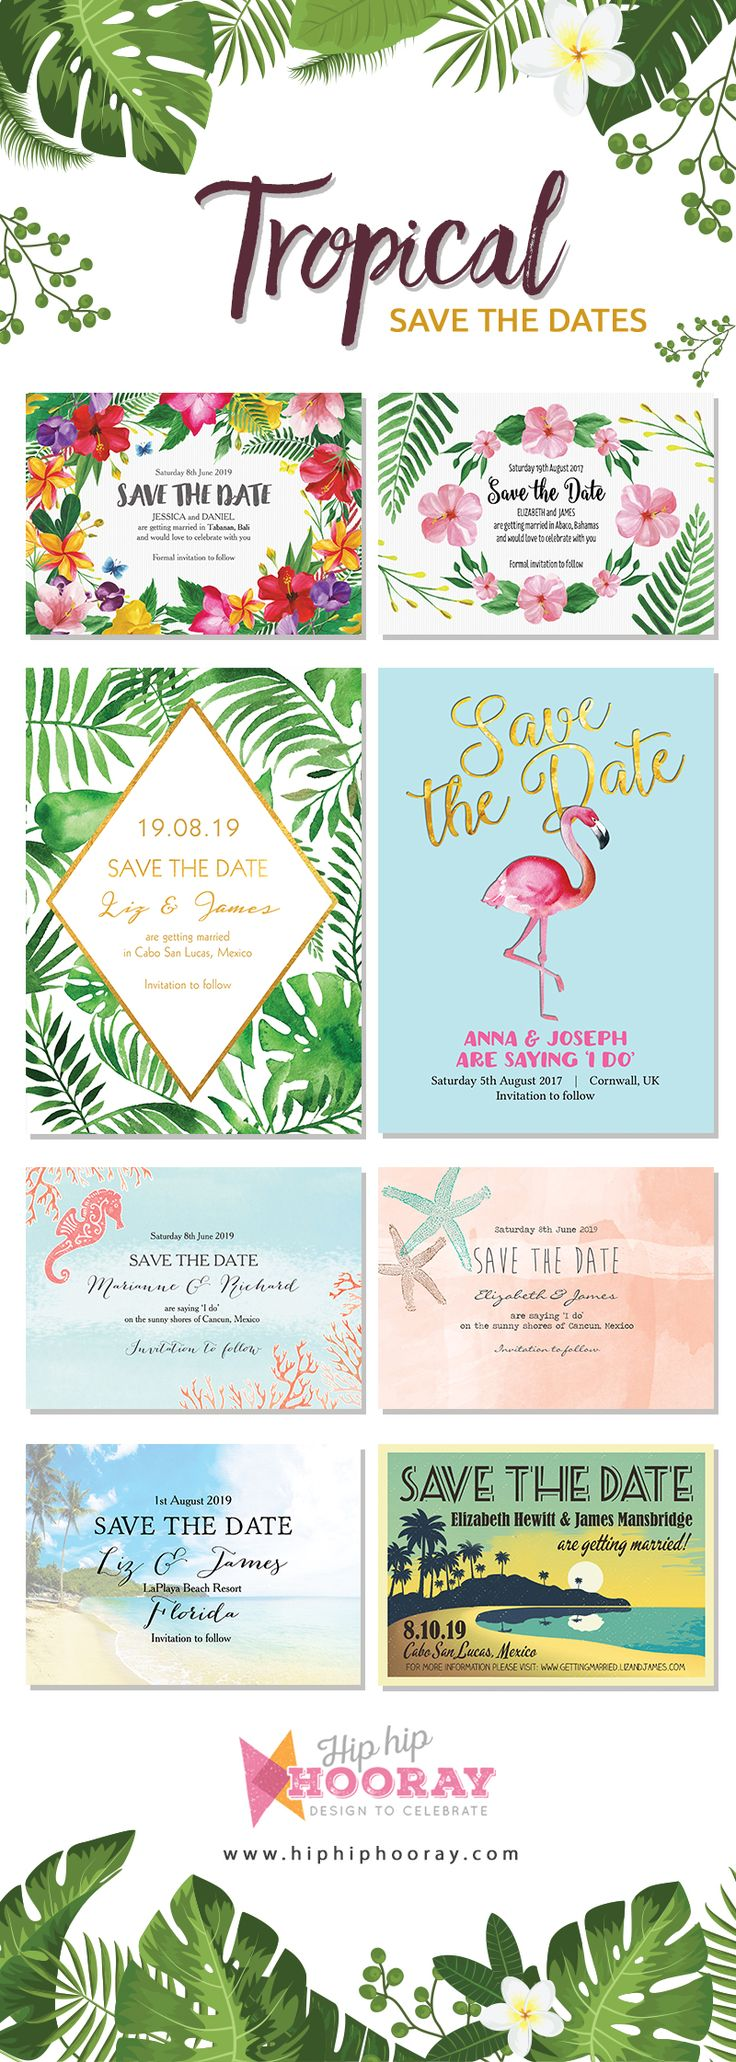 Tropical Save the Date cards -lots of designs perfect for a destination / beach wedding in Mexico, Caribbean, Hawaii, Florida, Bali, Bahamas, Tahiti, Dominican Republic, Jamaica and more. With tropical hibiscus flowers, flamingos, palm trees and palm fronds, sunset scenes and seahorse and coral illustrations. Personalise with your own text online. Wedding invitations and other stationery items available to match. Printable PDF or professionally printed & delivered.